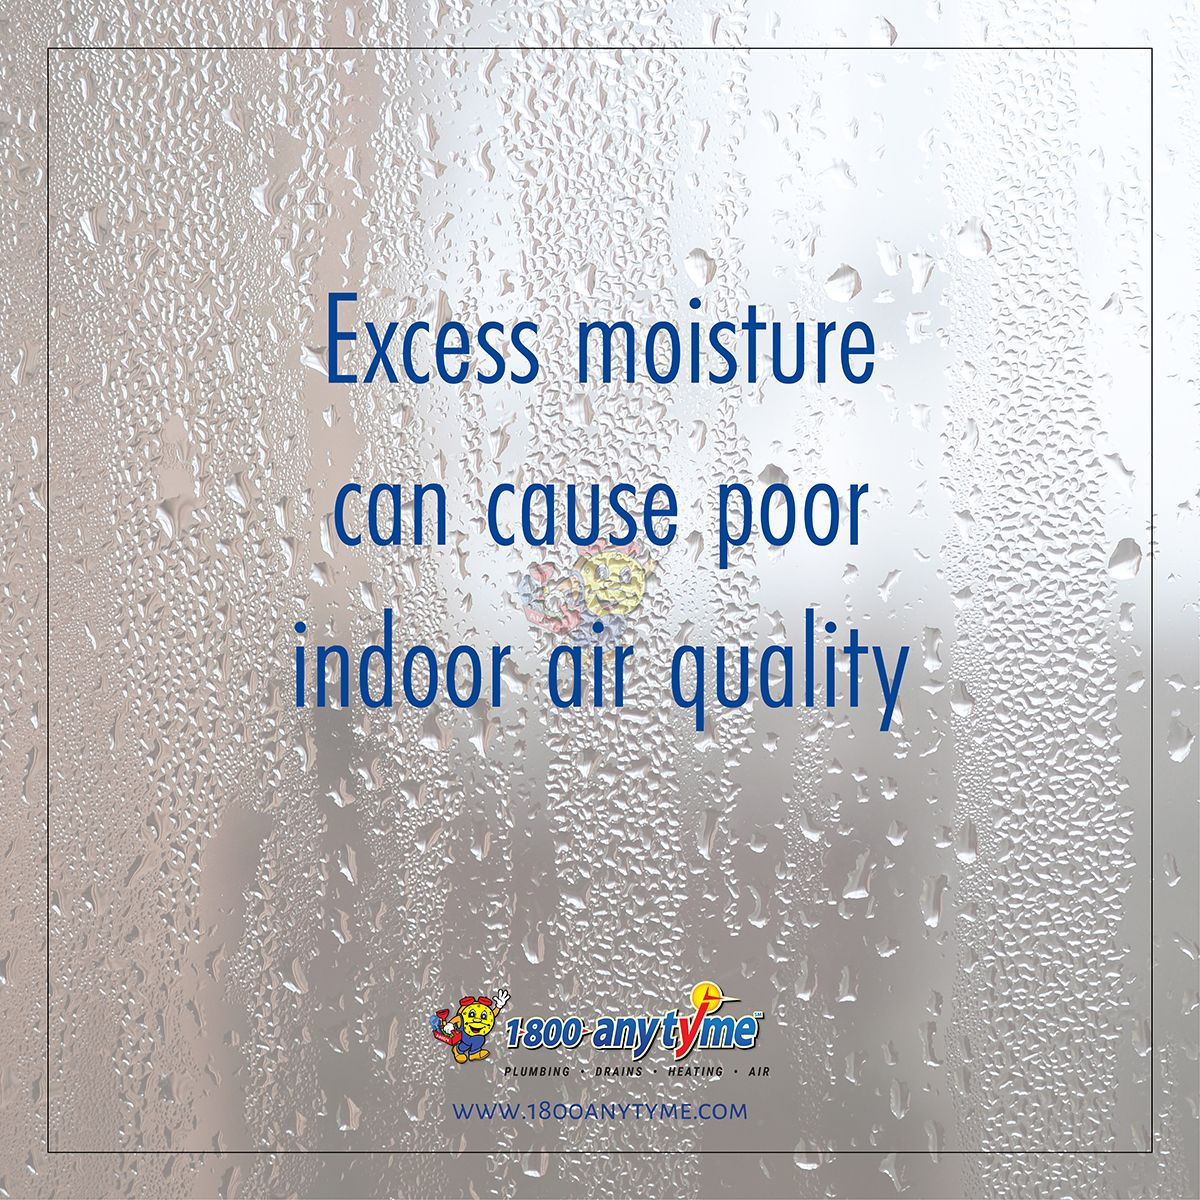 Excess moisture can cause poor indoor air quality